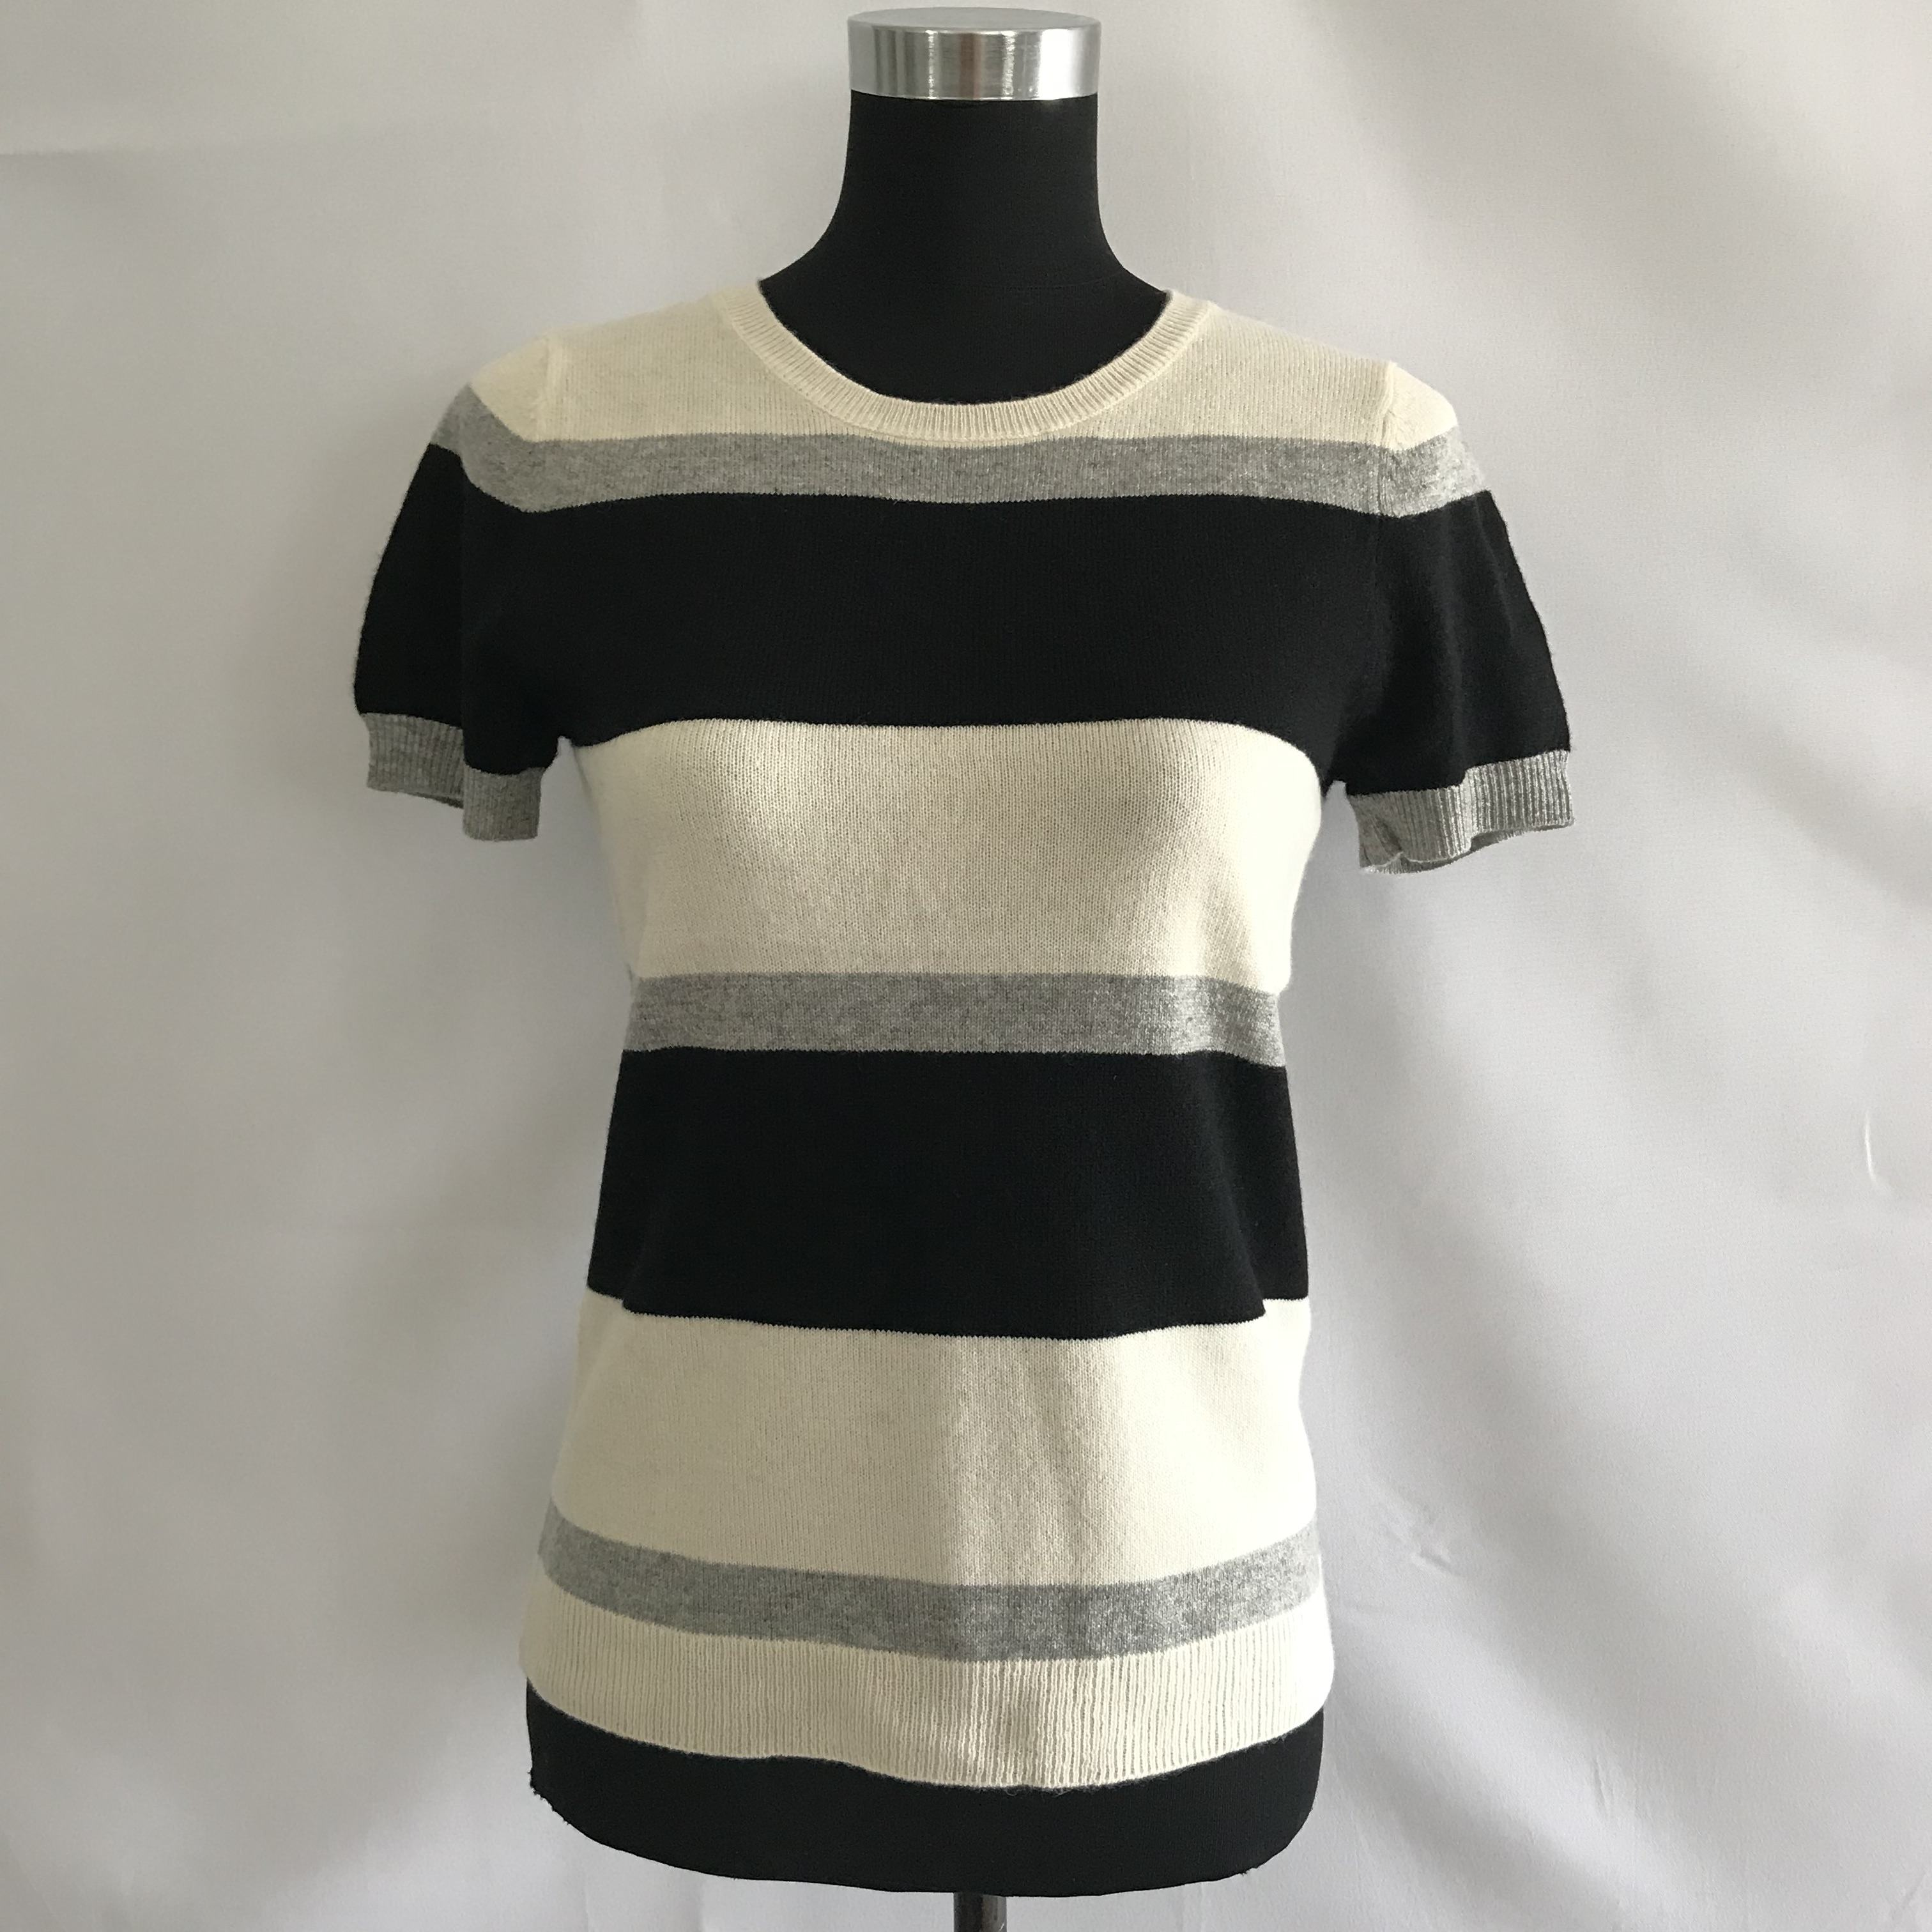 FALL AUTUMN SPRING SUMMER 2019 100% pure cashmere knitted ladies short sleeve crew neck striped sweater pullover